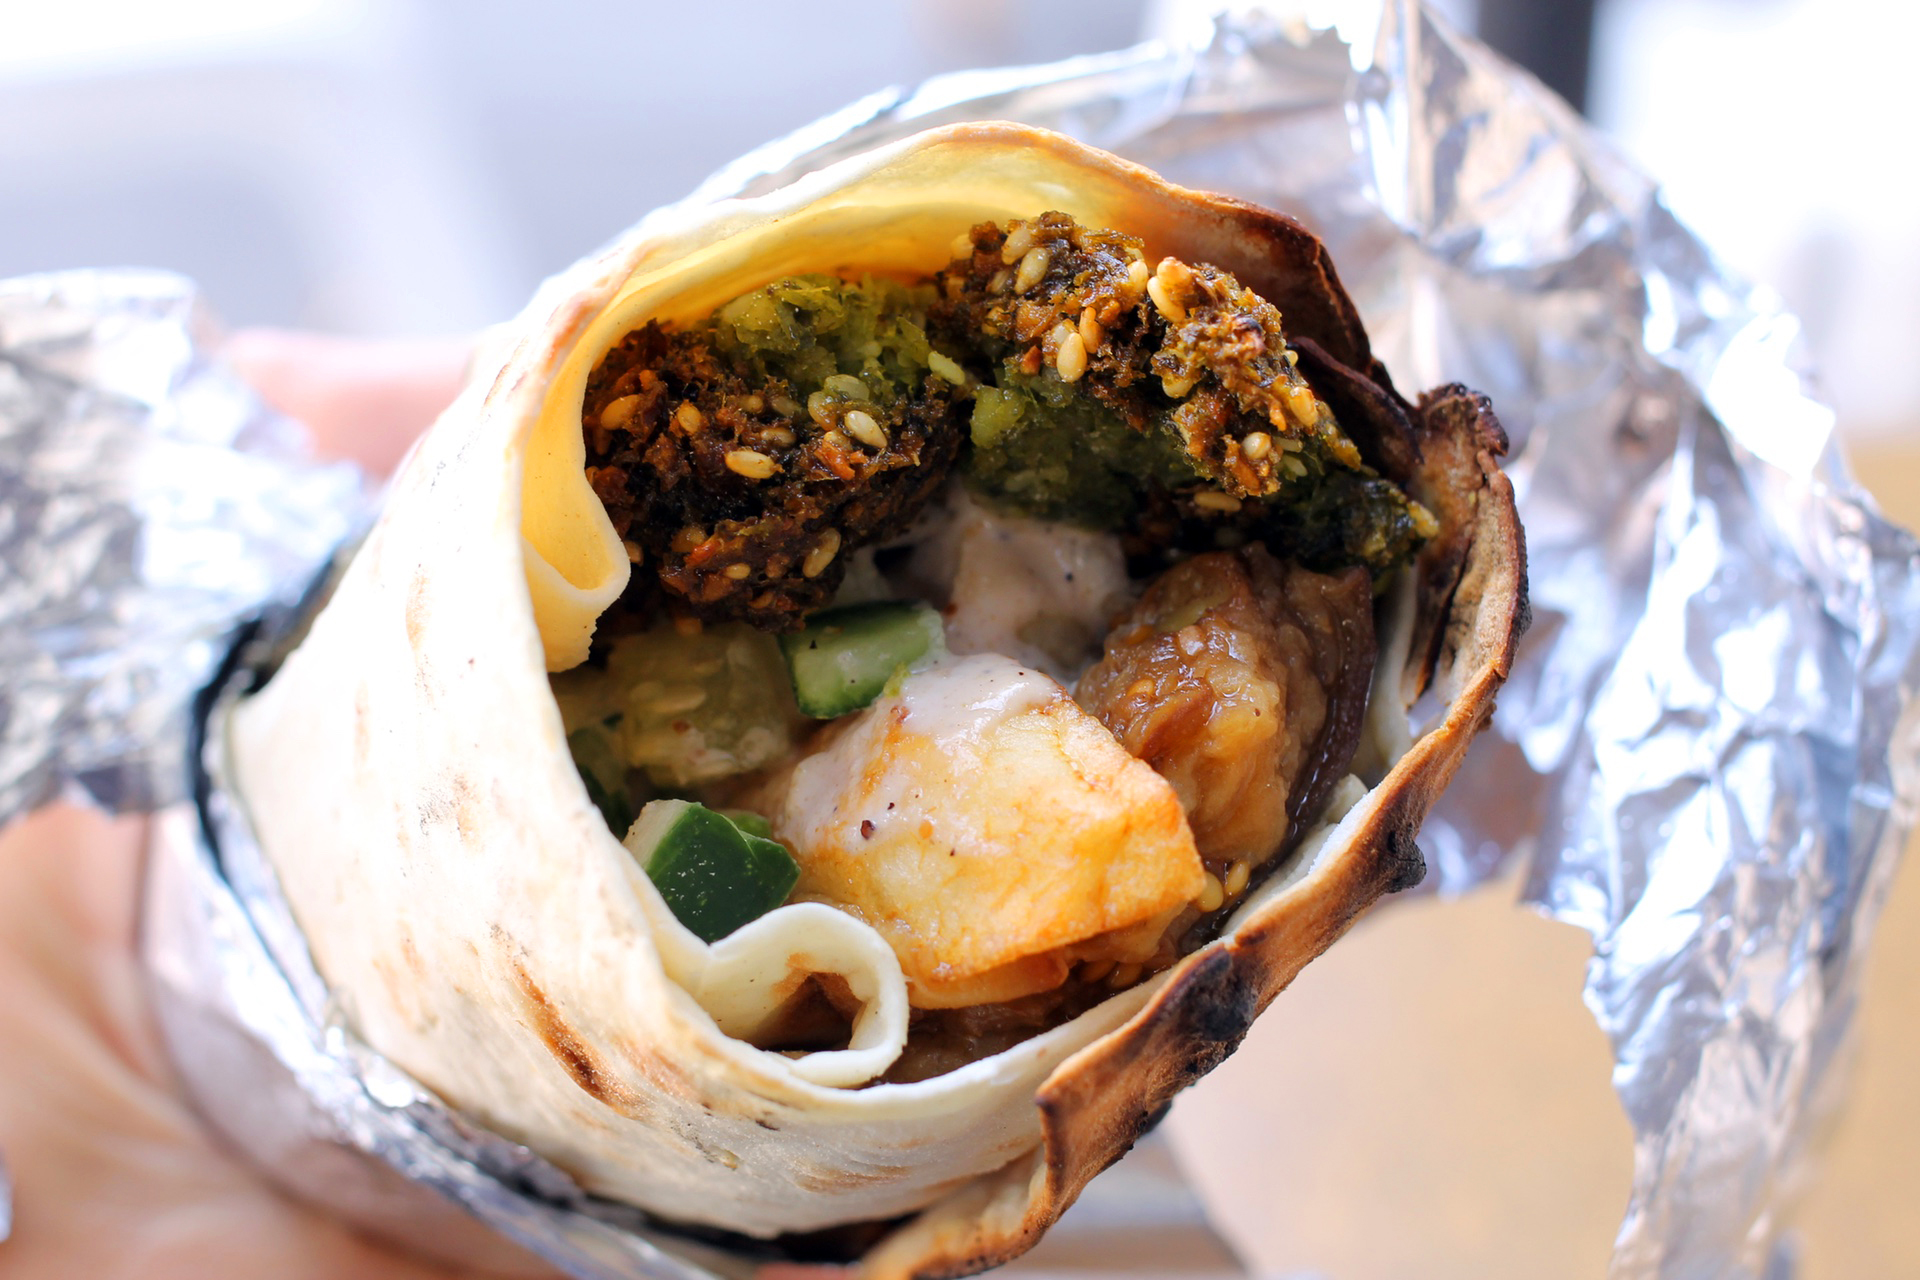 The falafel deluxe sandwich at Truly Mediterranean in San Francisco includes eggplant and potatoes in addition to falafel.